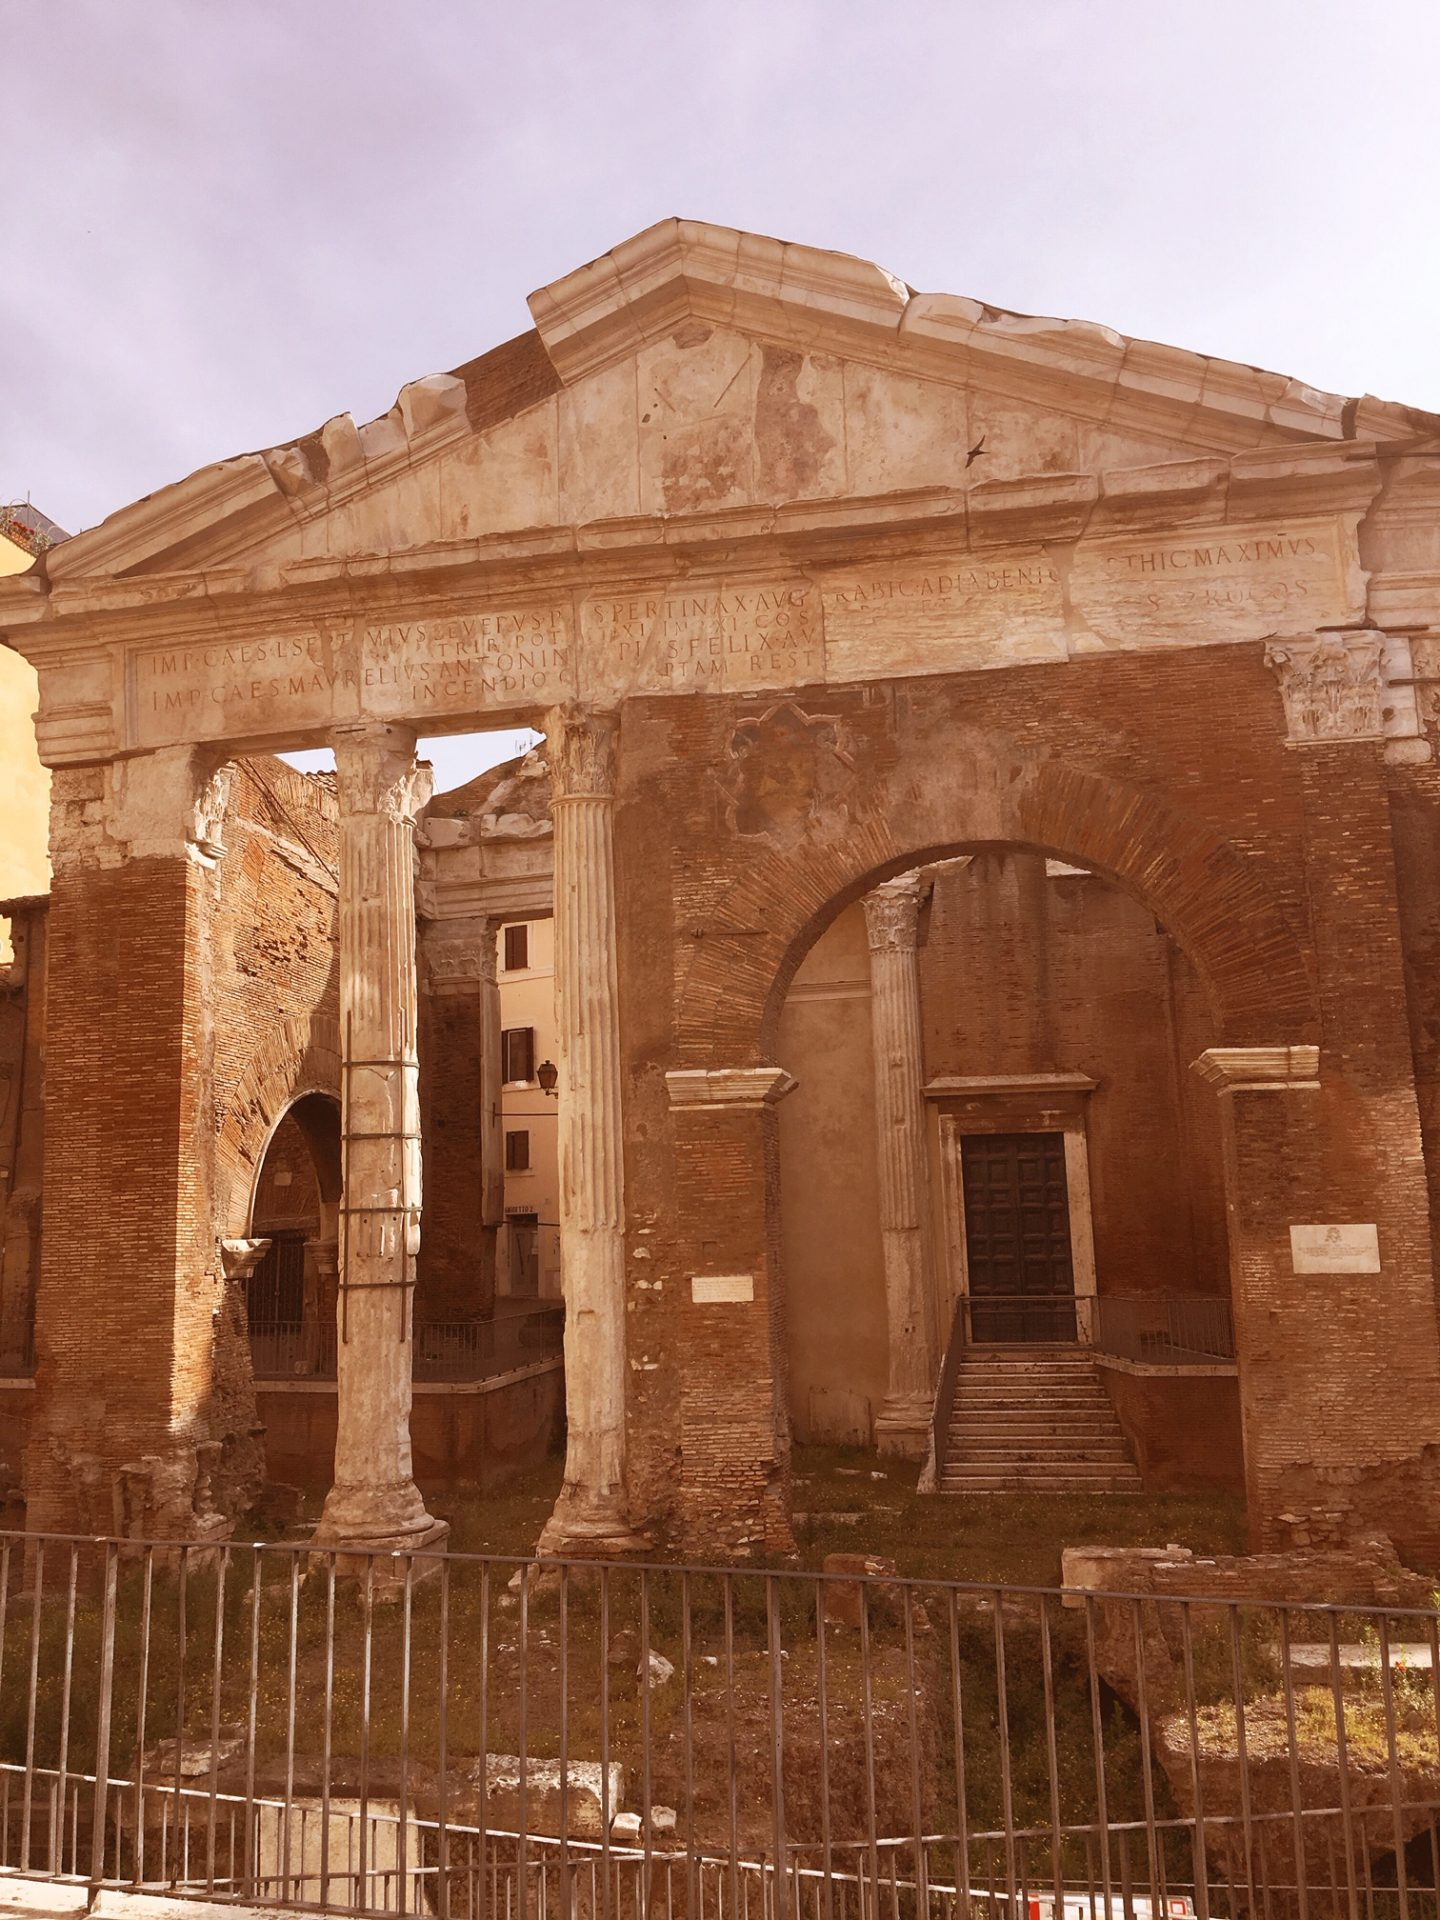 The Porticus of Octavia in Rome